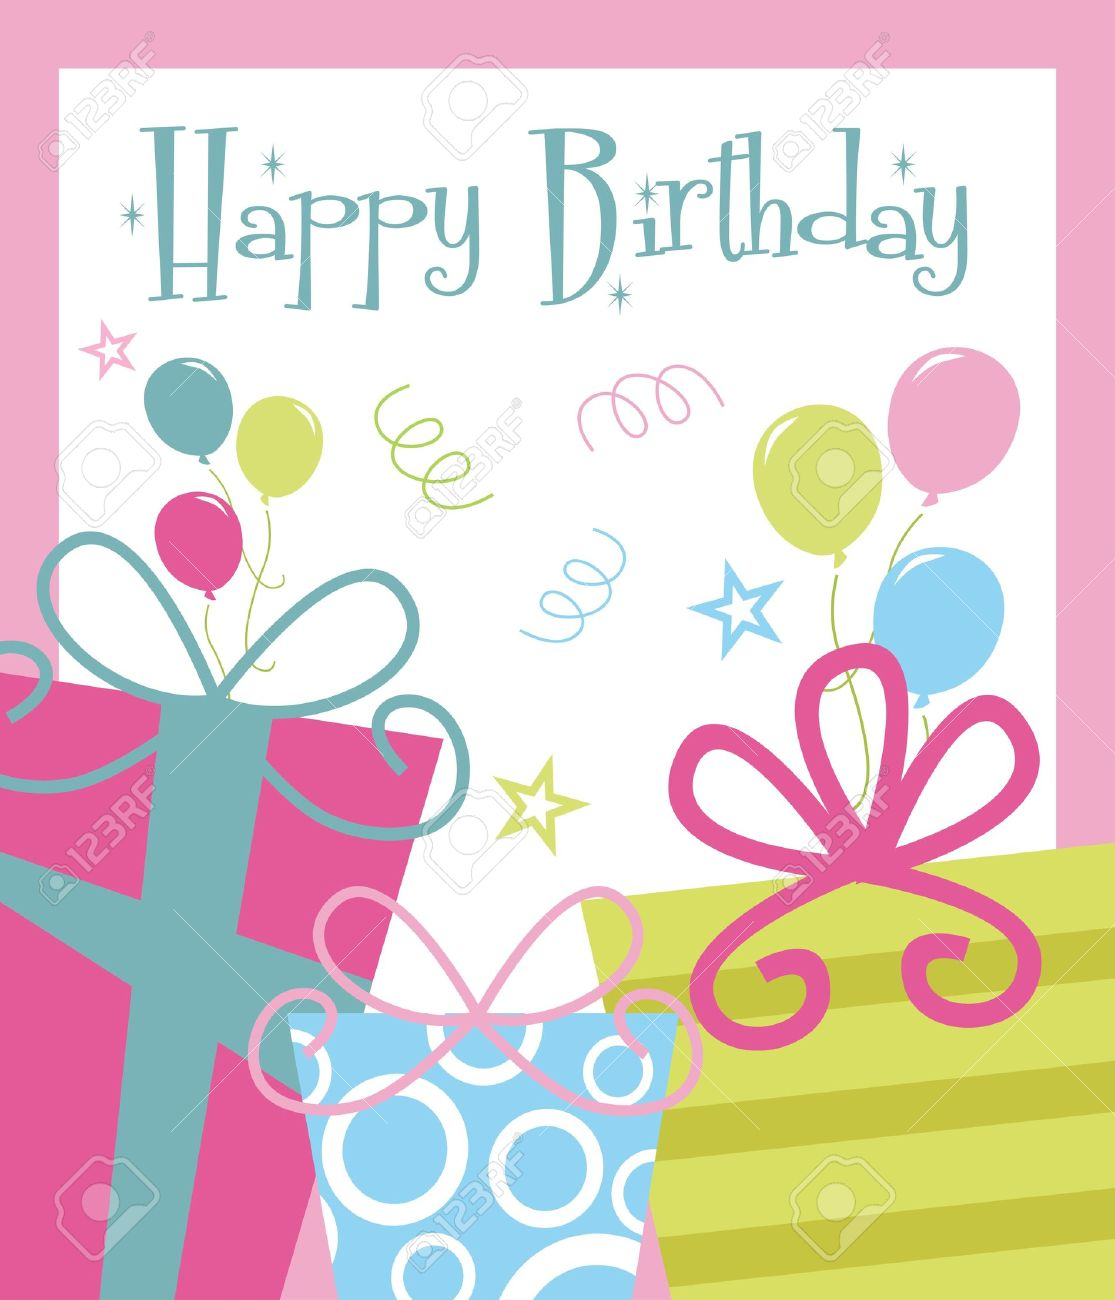 happy birthday greeting cards pictures ; 20855088-happy-birthday-greeting-card-illustration